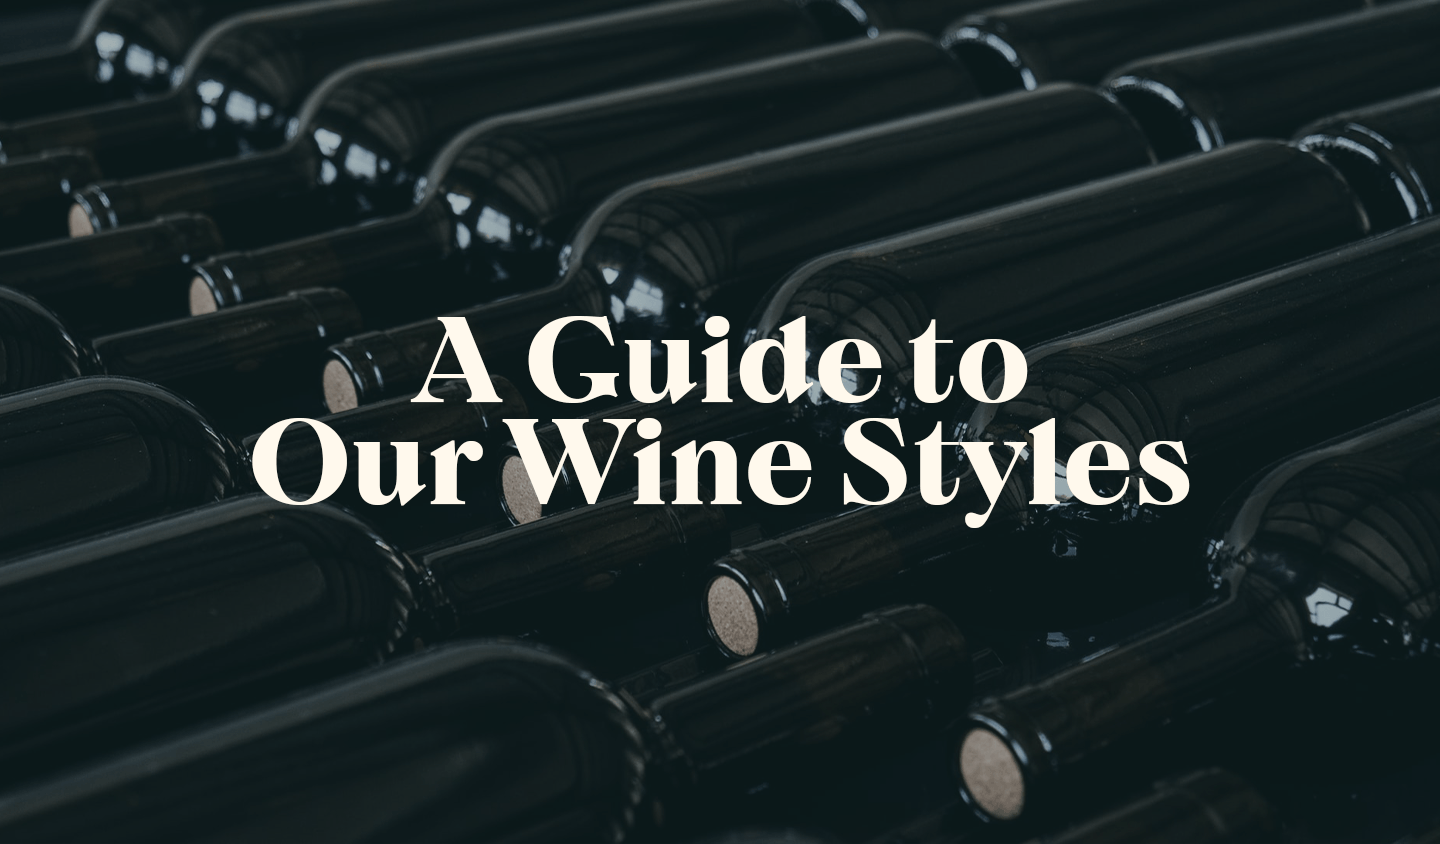 Introducing our Wine Styles